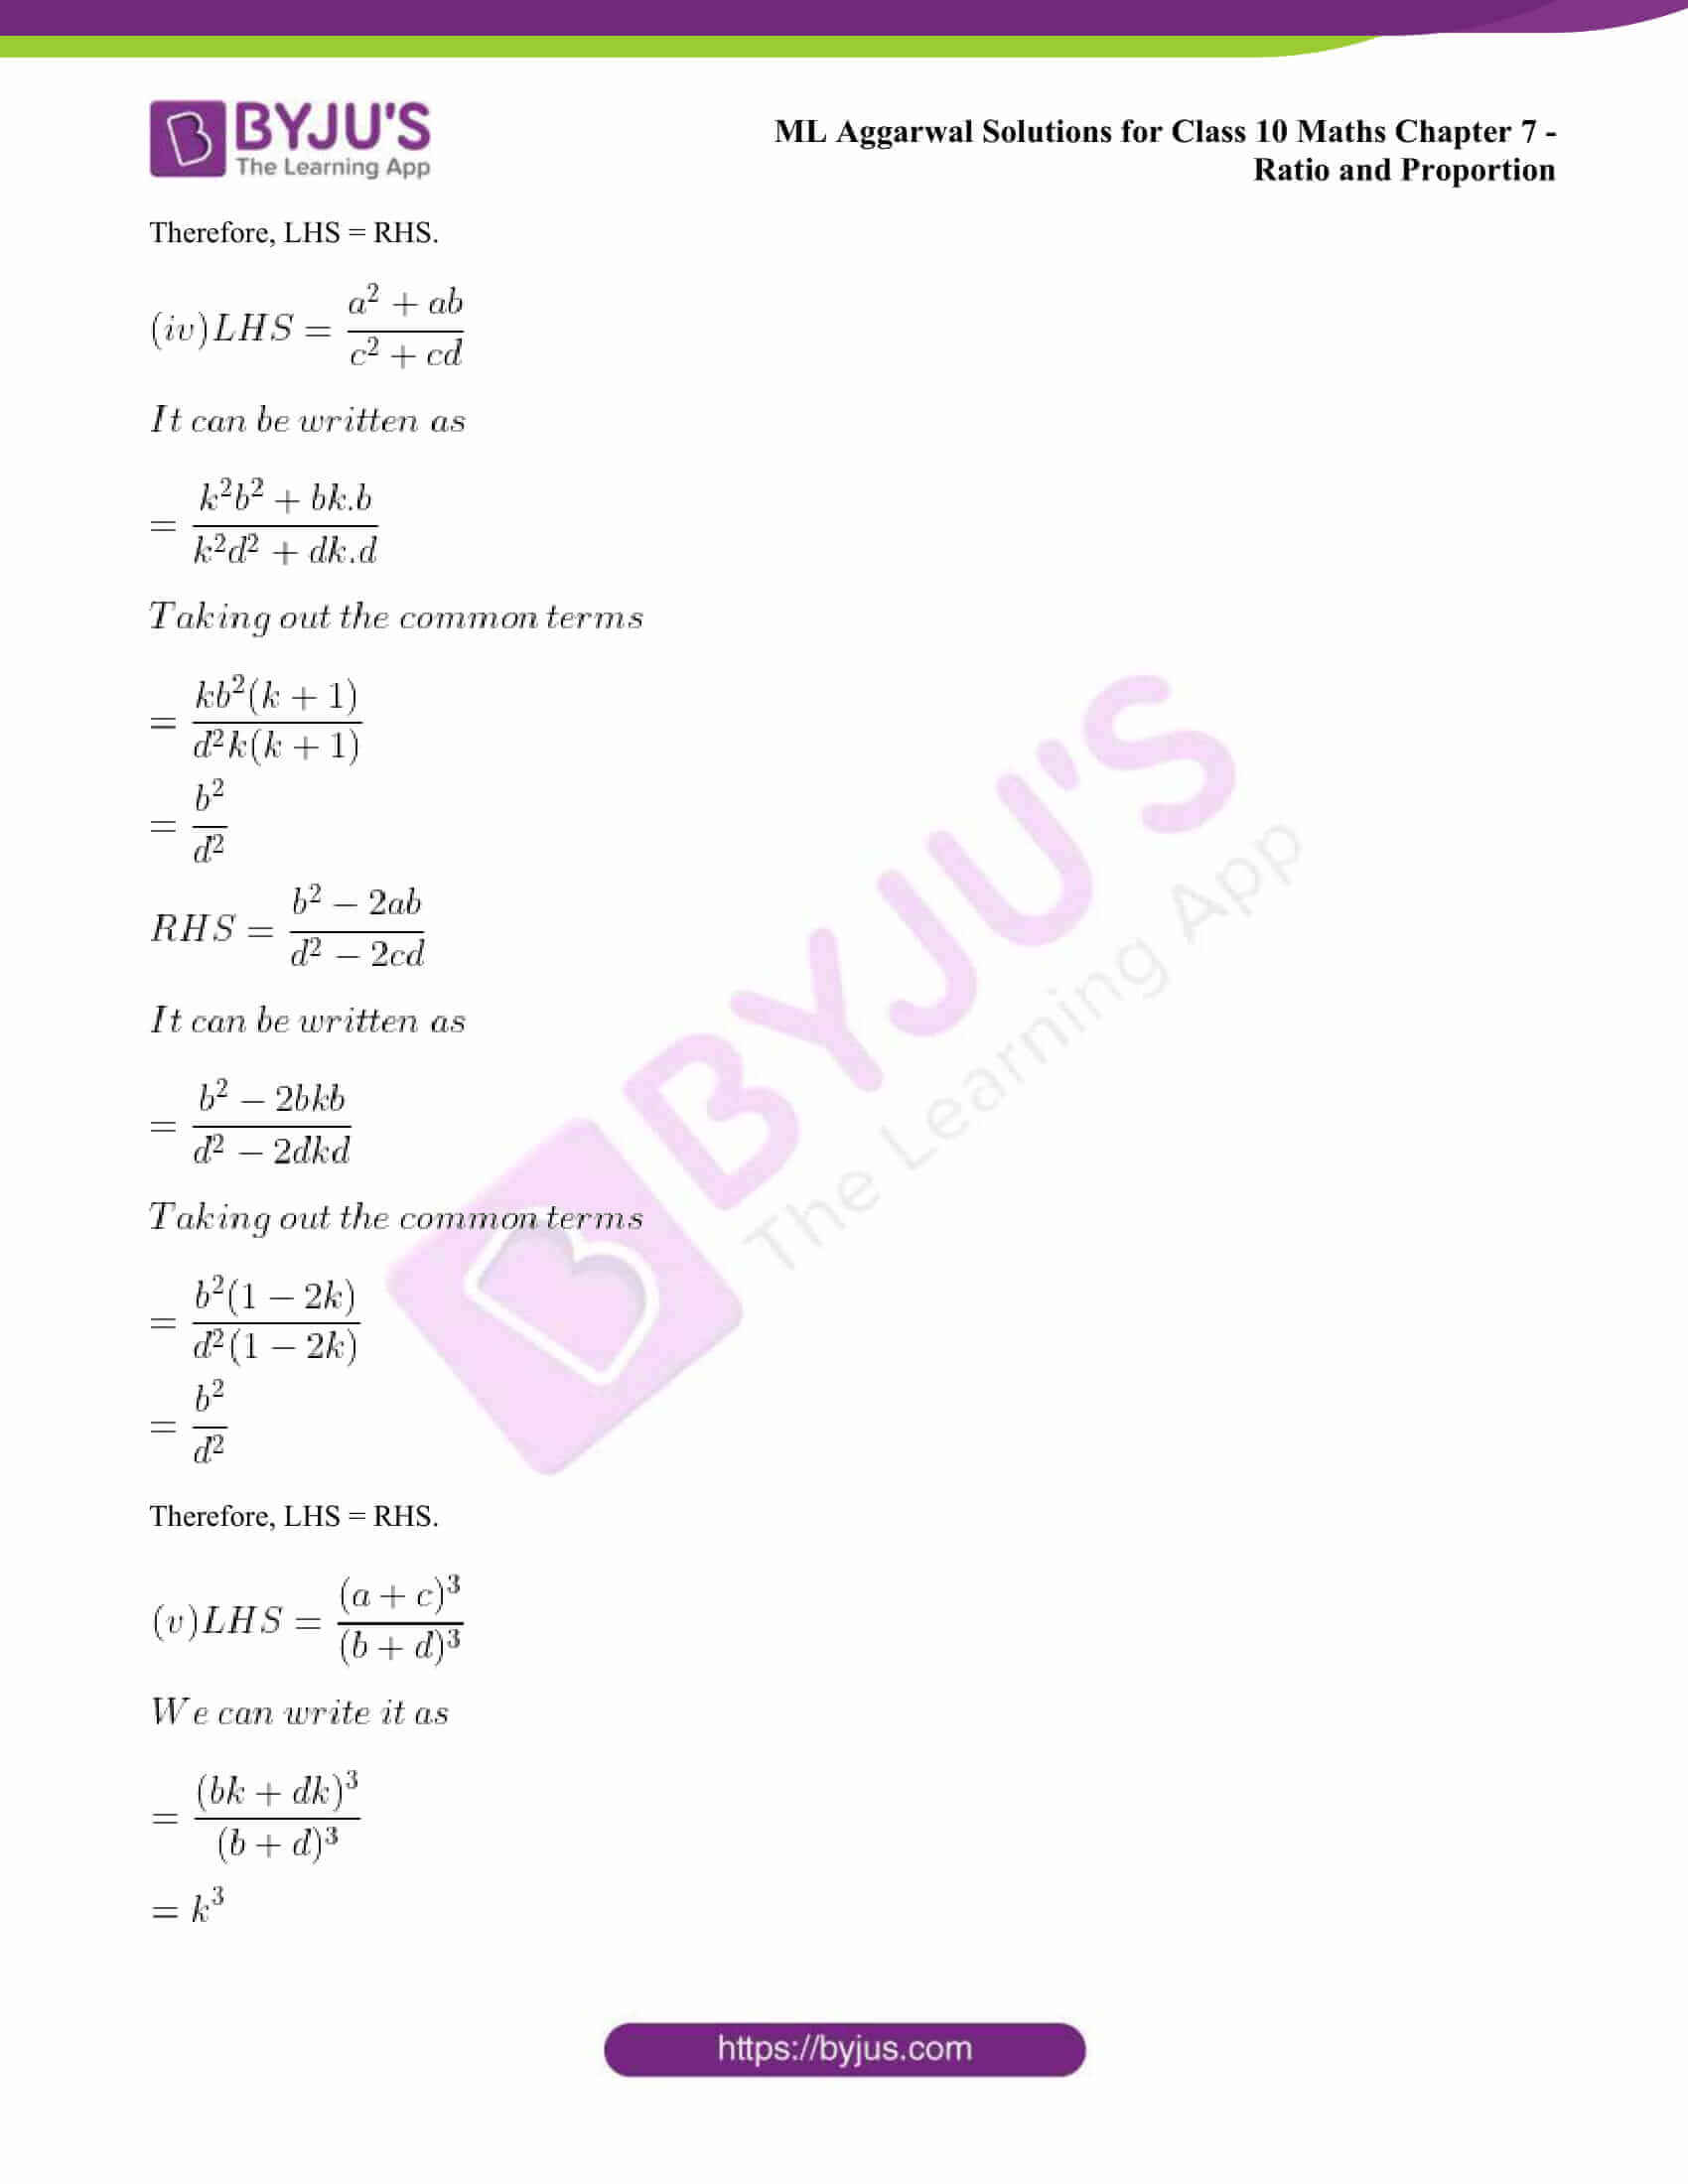 ml aggarwal solutions class 10 maths chapter 7 32